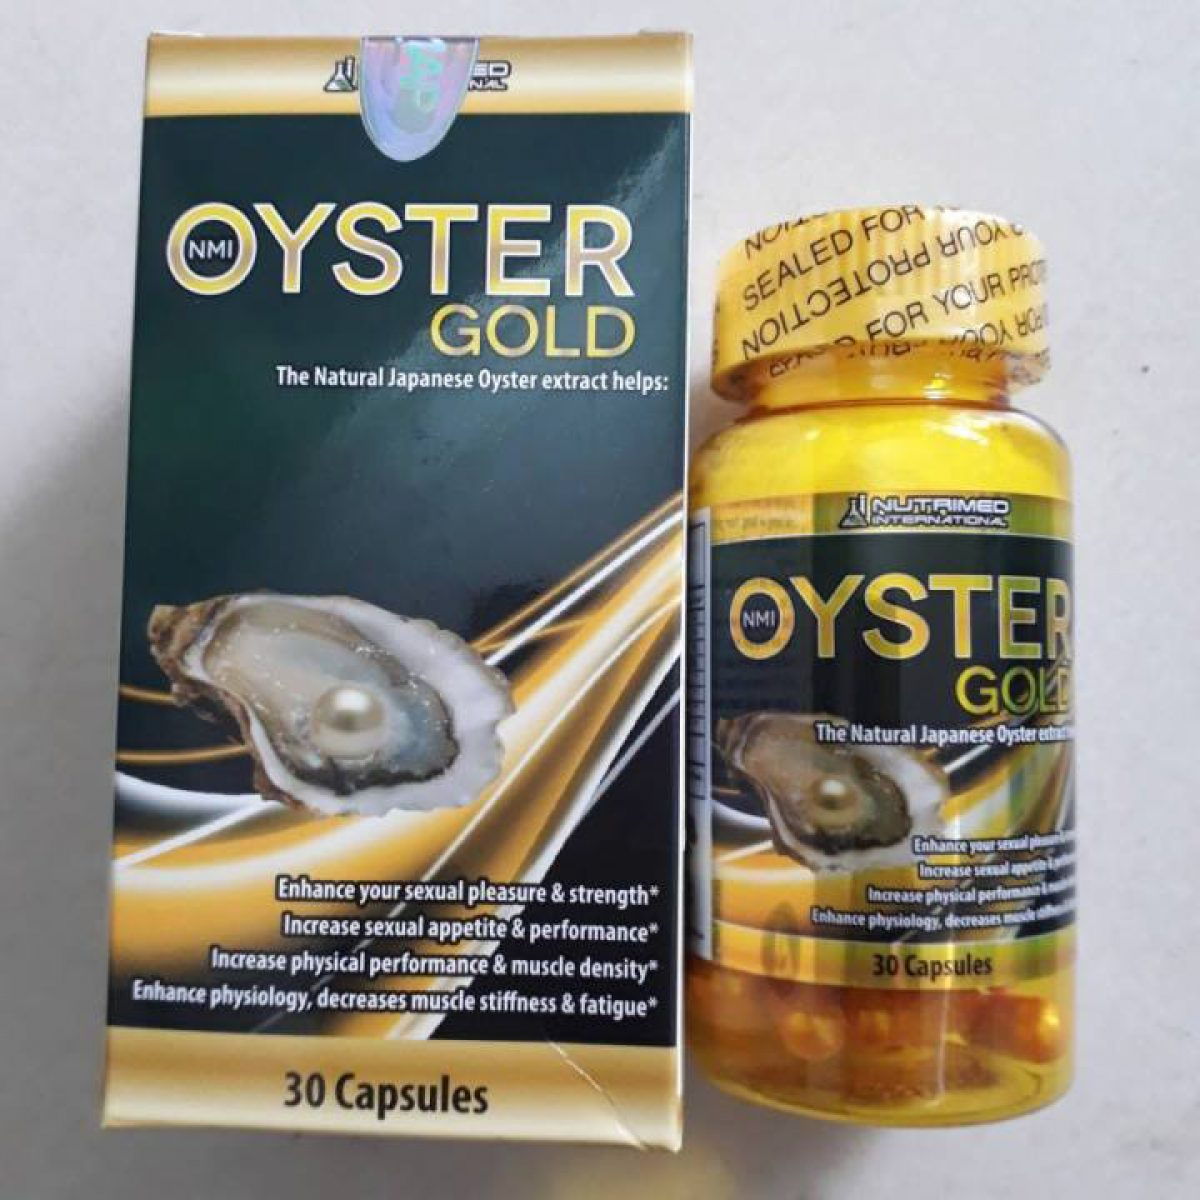 NMI Oyster Gold